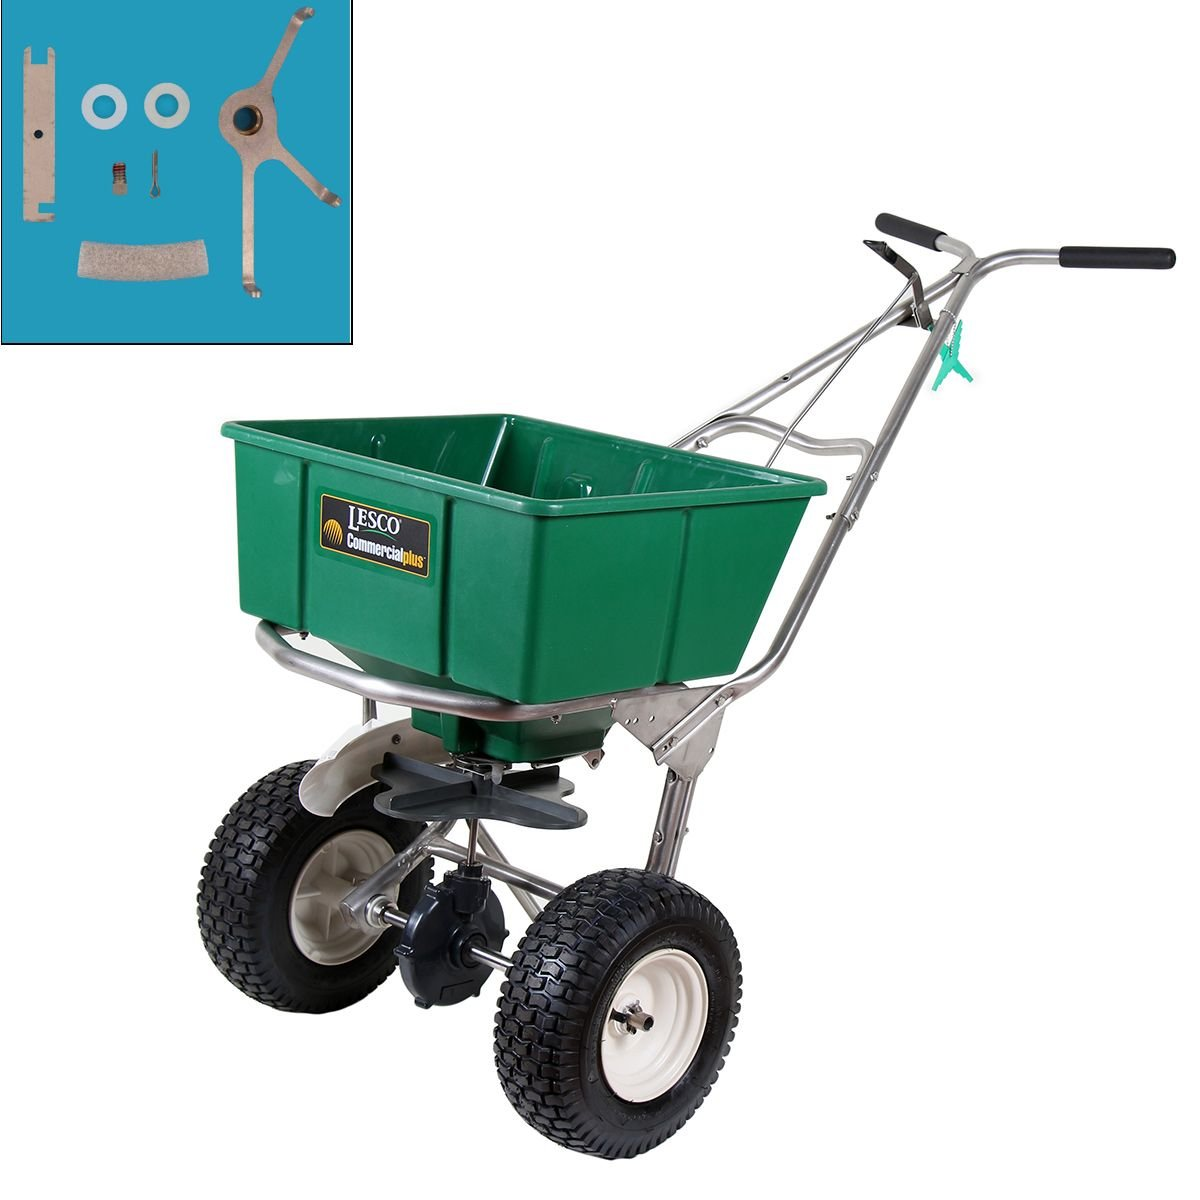 Lesco 101186 High Wheel Walk-Behind Fertilizer Spreader with T422400 Breakthru Agitator Kit (Bundle, 2 Items)